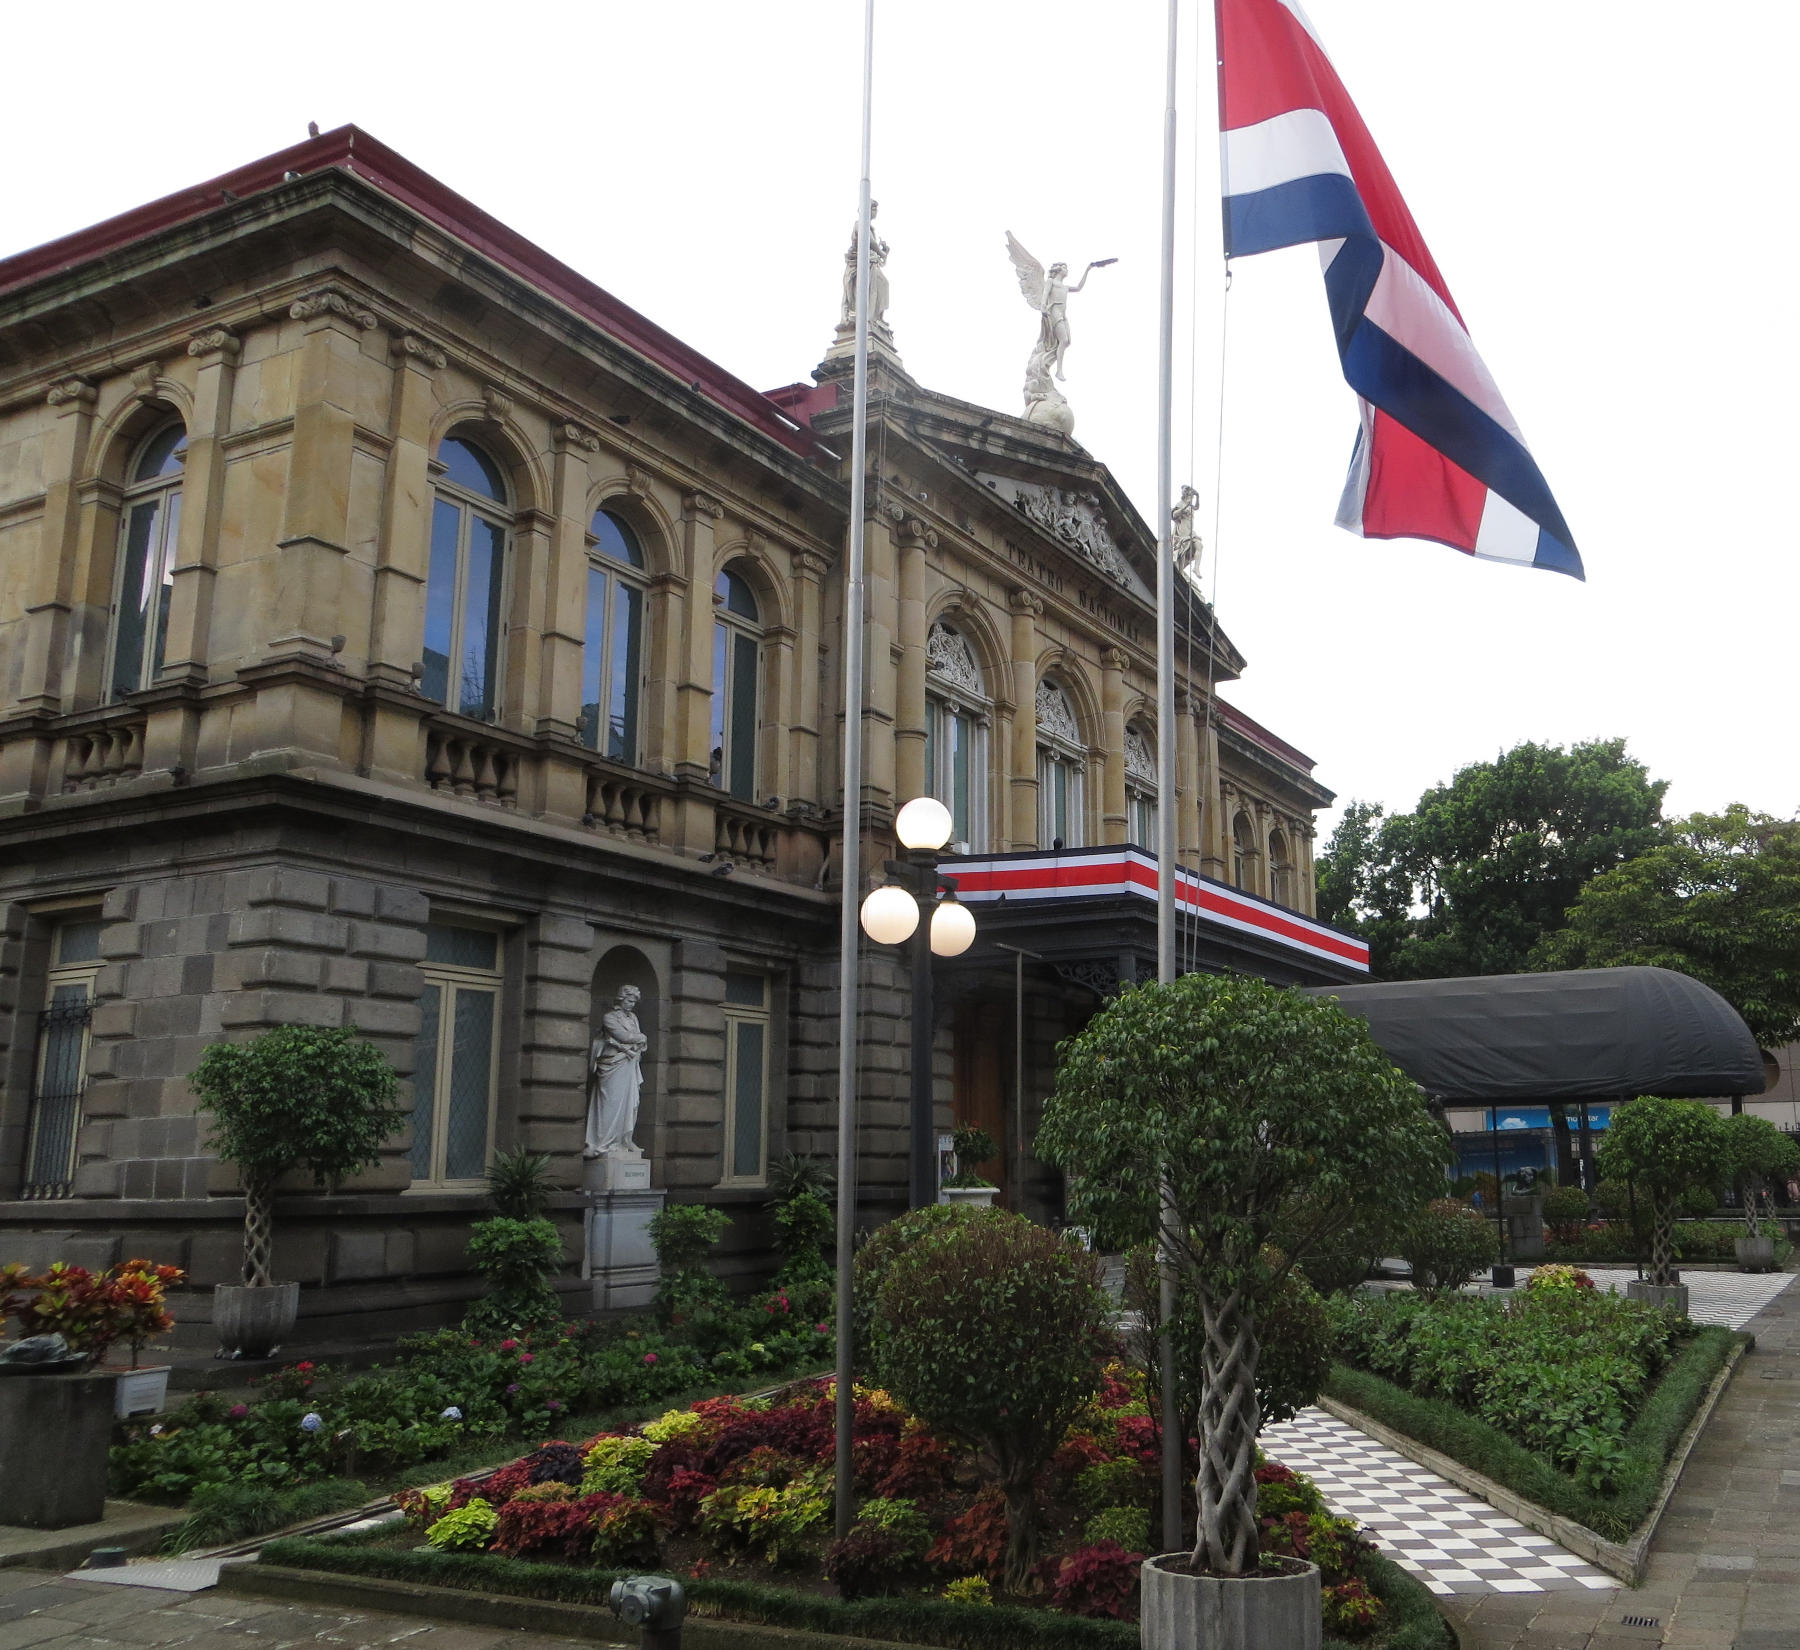 The National Theater of Costa Rica is an architectural and cultural gem in the heart of Downtown San José, Costa Rica